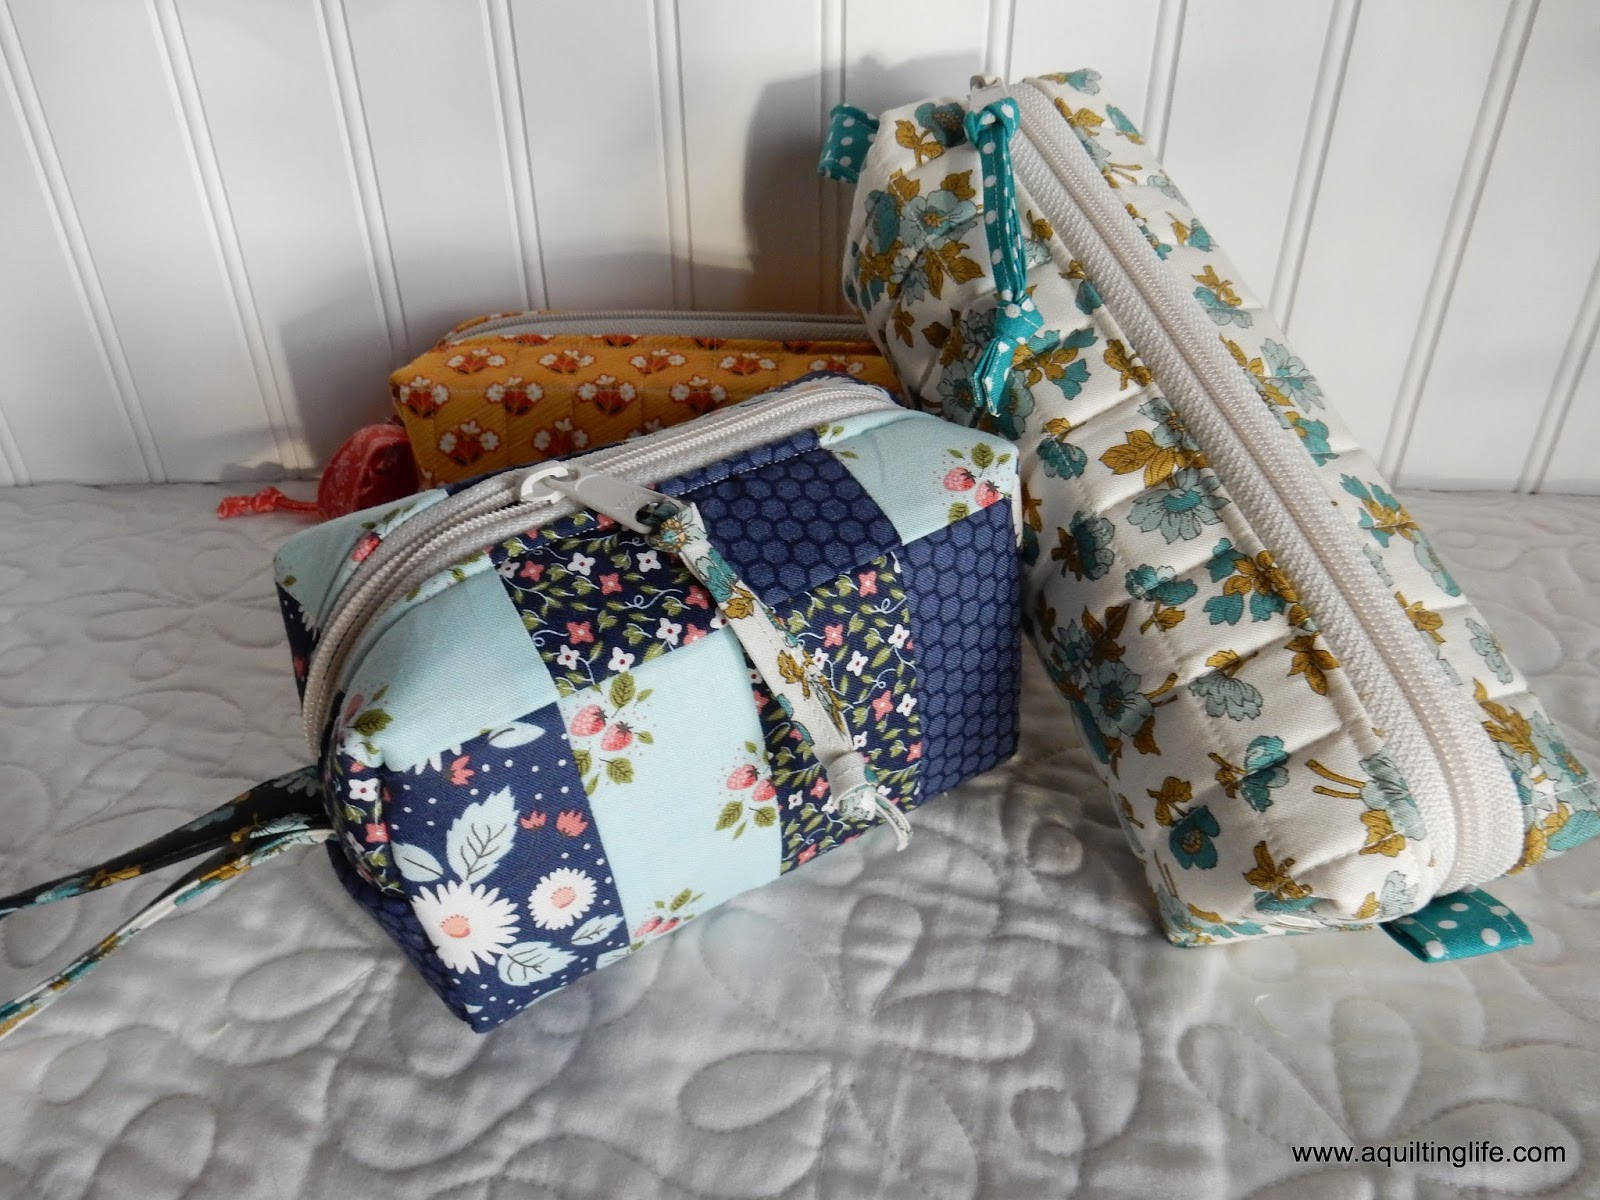 Gifts for Friends: Little Bags | A Quilting Life - a quilt blog : quilt gifts - Adamdwight.com